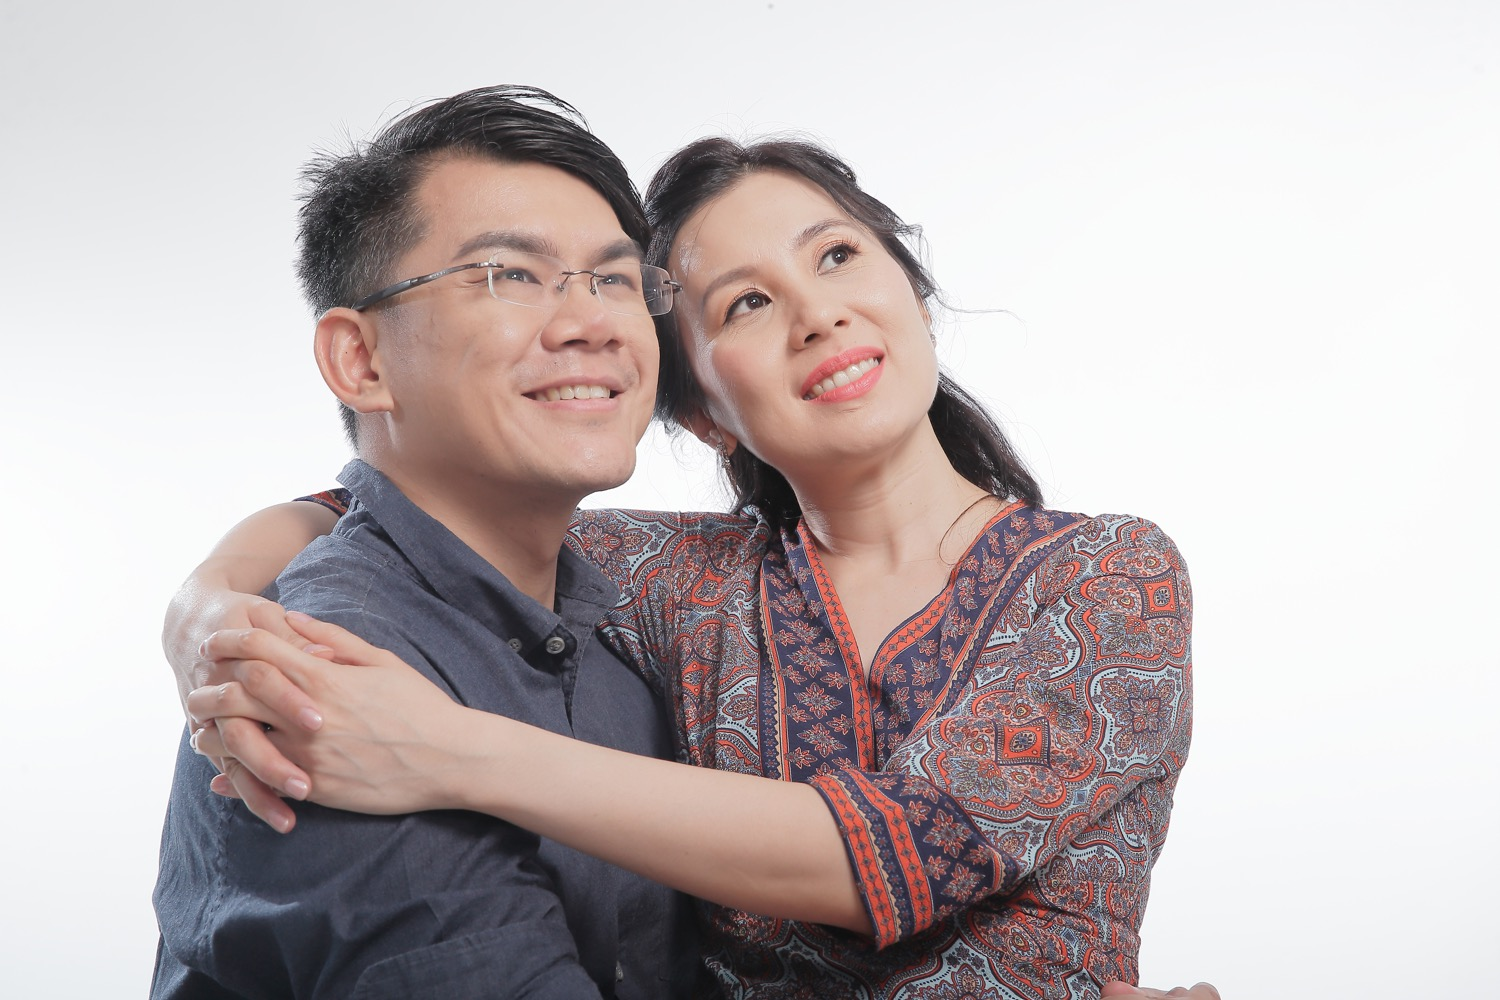 Kelvin and Pauline Pre-Wedding Photo Shoot